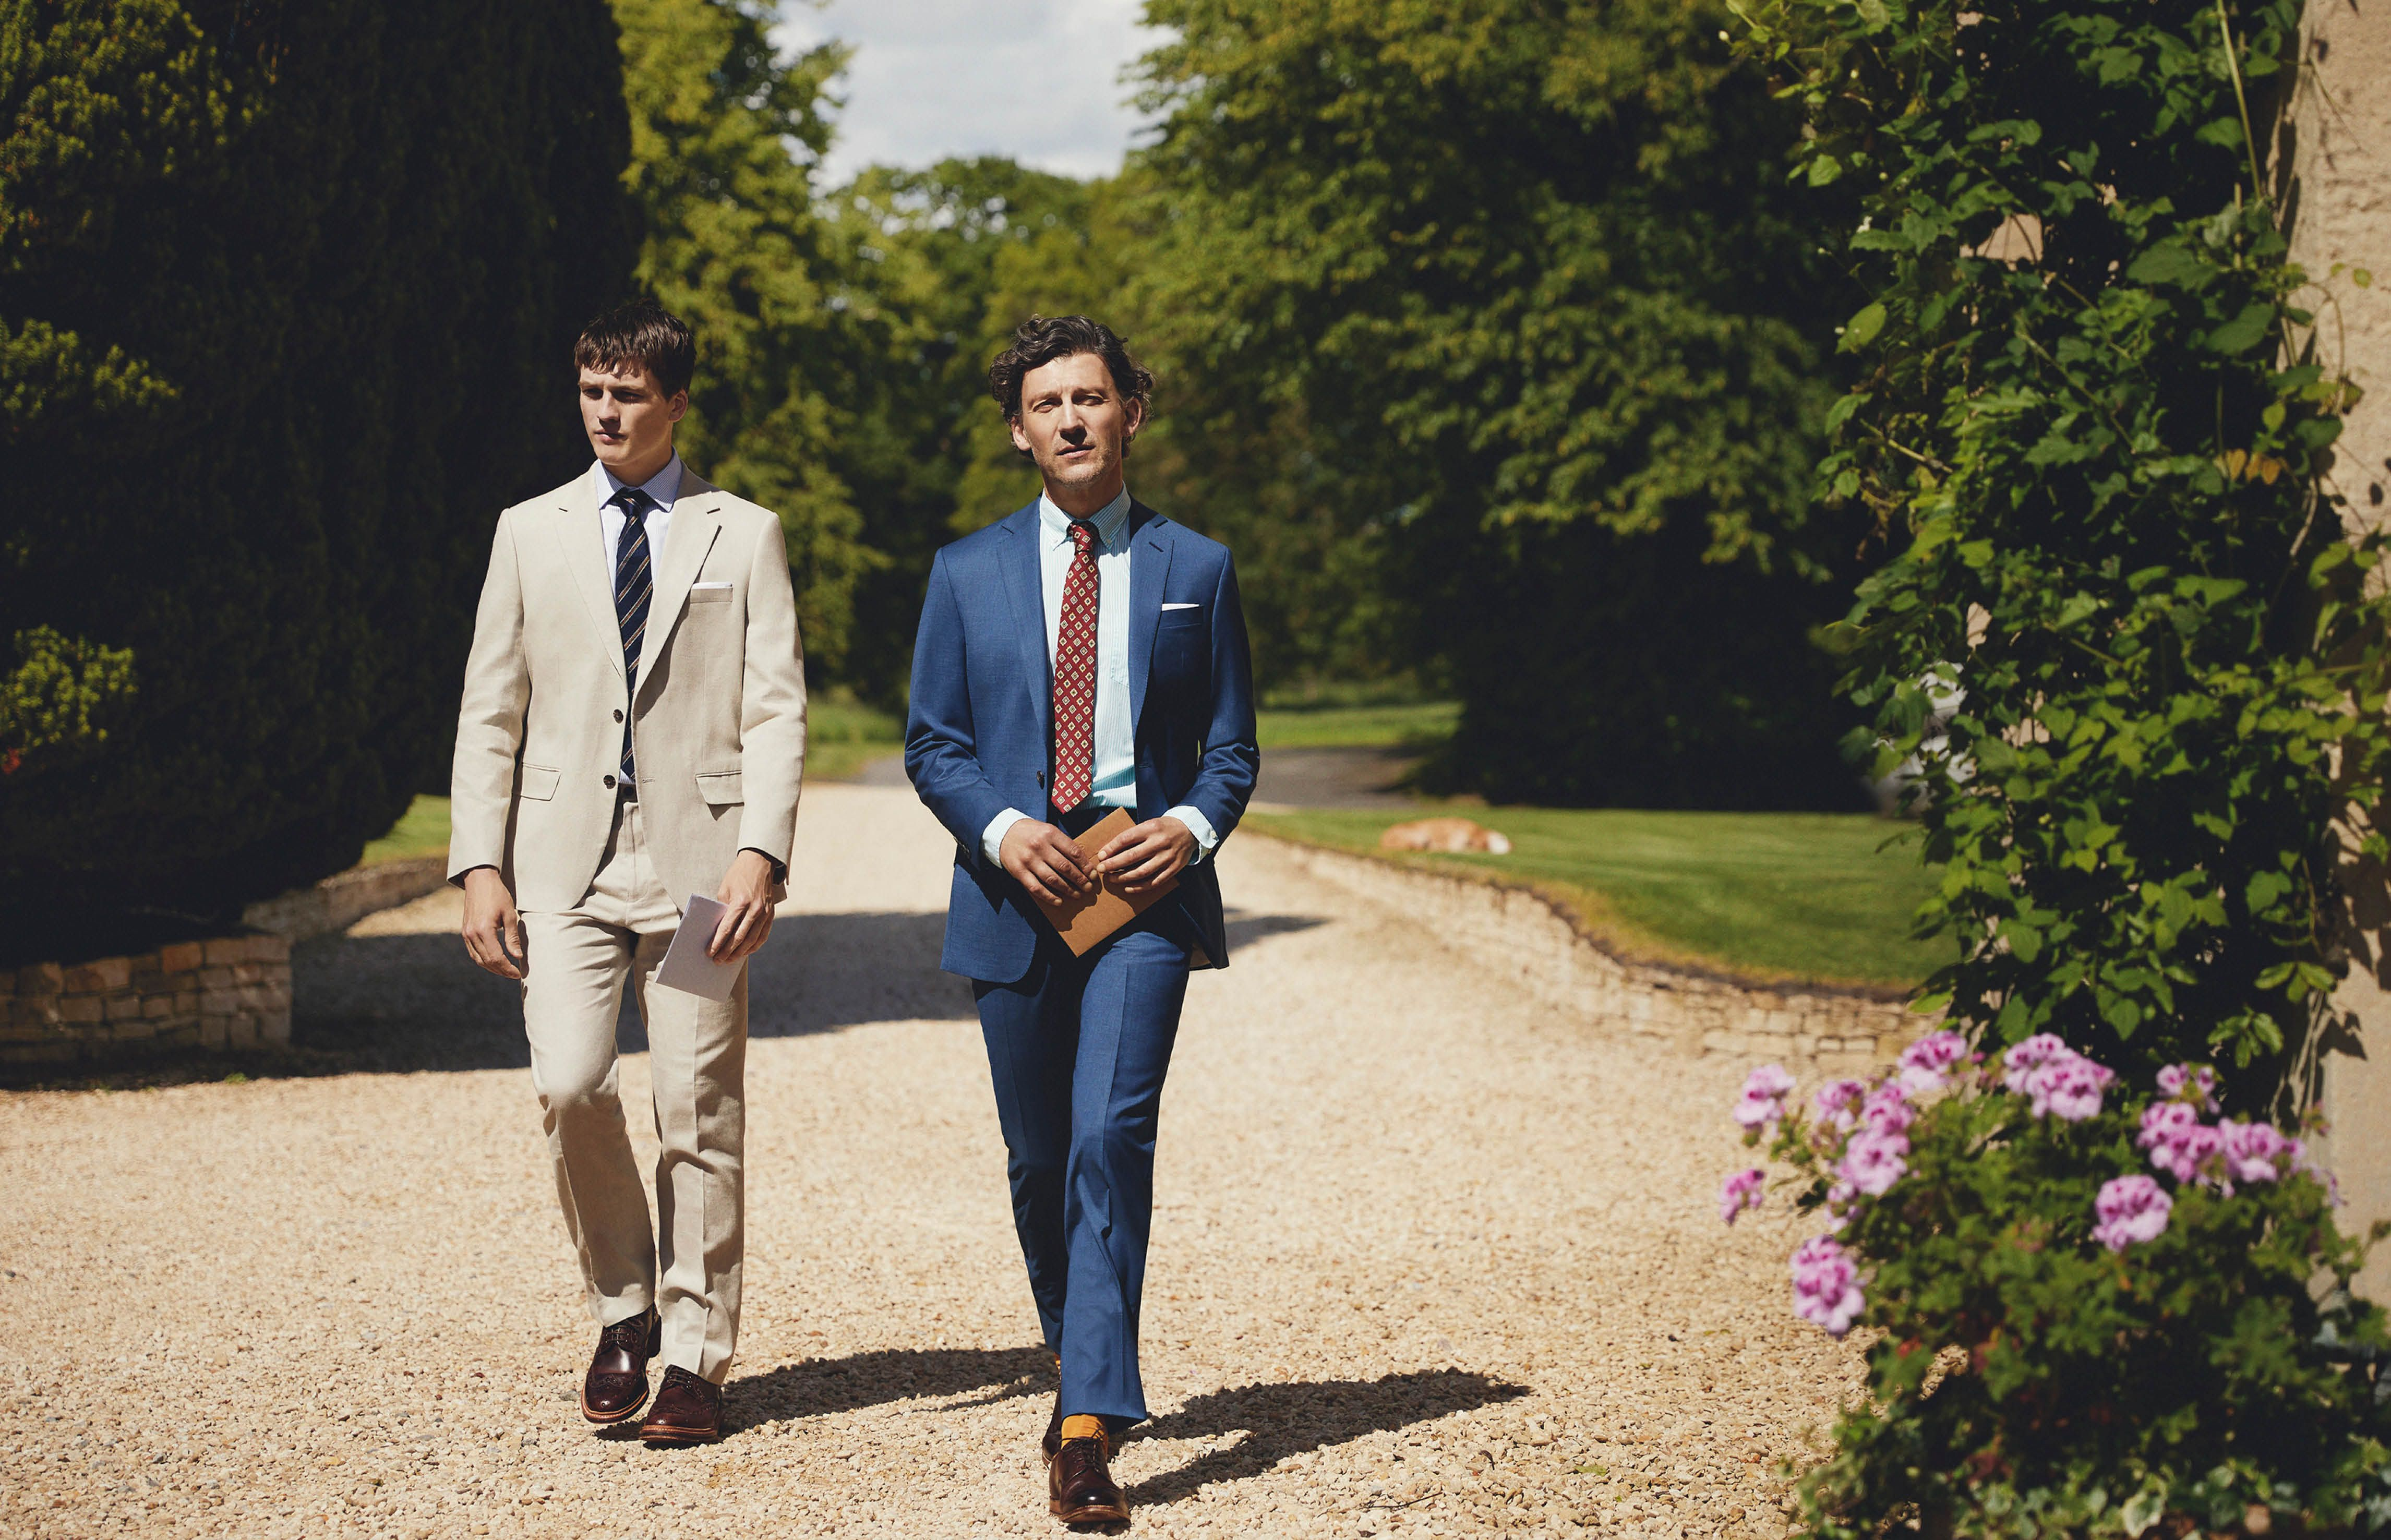 The no-sweat wedding guide